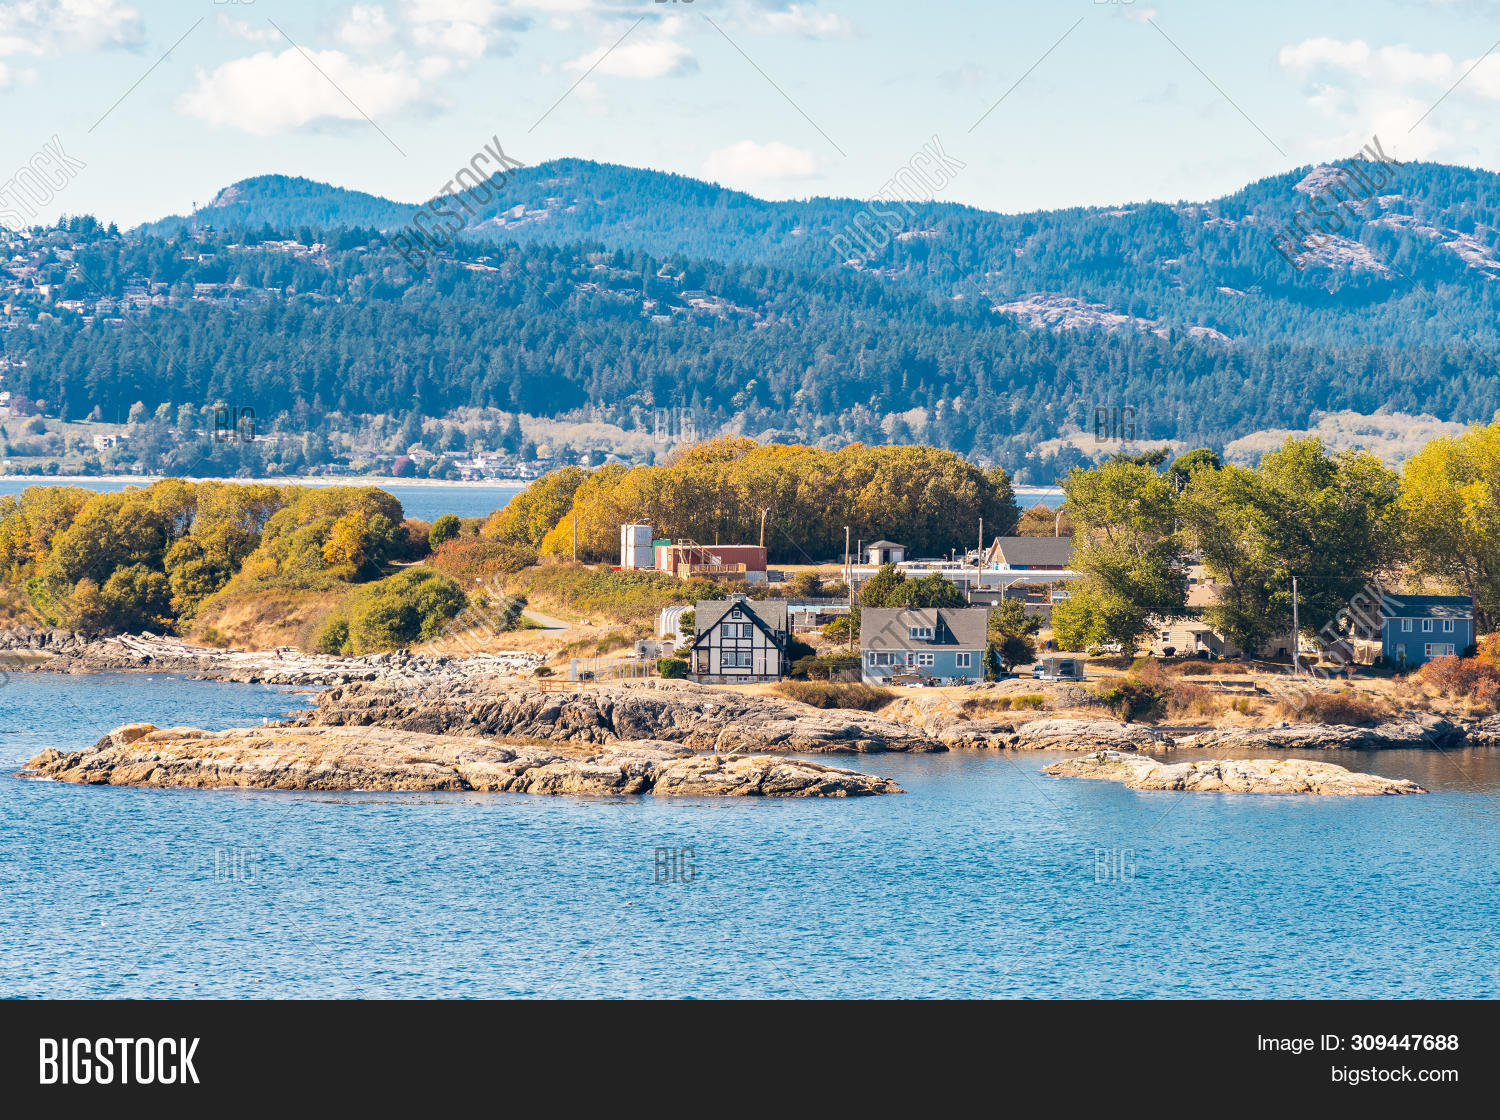 architecture,autumn,bay,bc,beautiful,british,building,canada,canadian,city,coast,coastal,coastline,colorful,columbia,day,destination,drone,fall,harbor,harbour,houses,island,lake,landscape,mountainous,mountains,nature,ocean,outdoor,pine,range,residence,residential,residents,scenery,scenic,sea,season,sunny,travel,trees,urban,vacation,victoria,view,water,waterfront